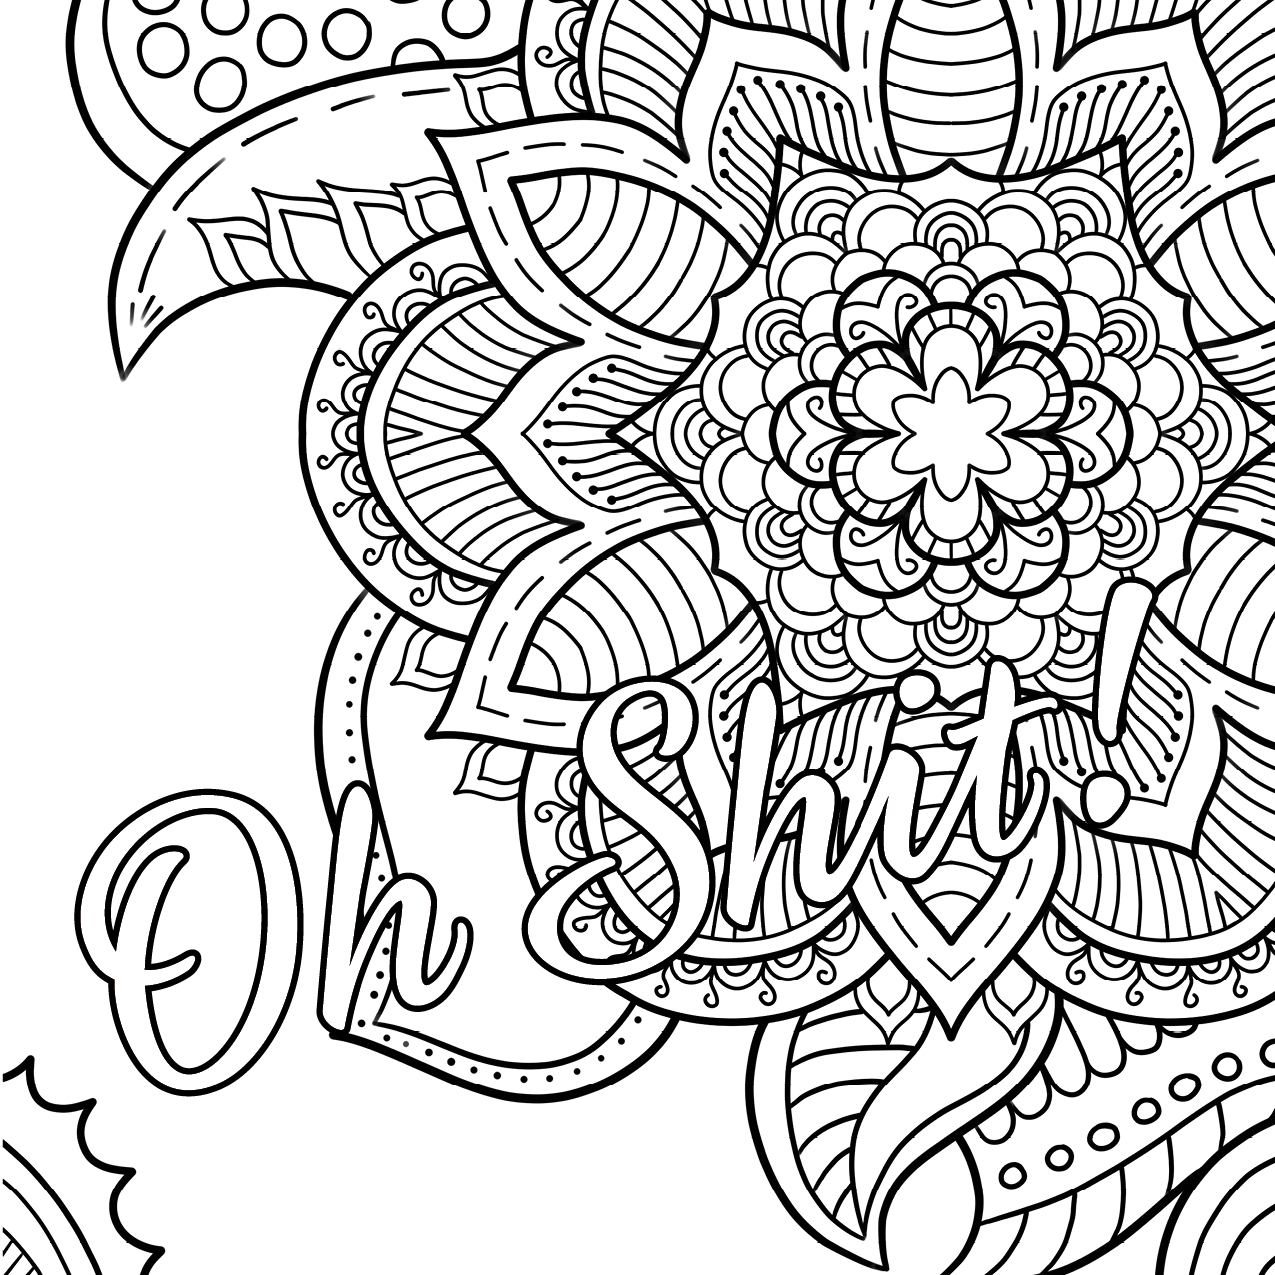 Colouring in book swear words - Http Thiagoultra Com Wp Content Uploads 2017 03 Interior Cursing Therapy Png Swear Words Coloring Pages Pinterest